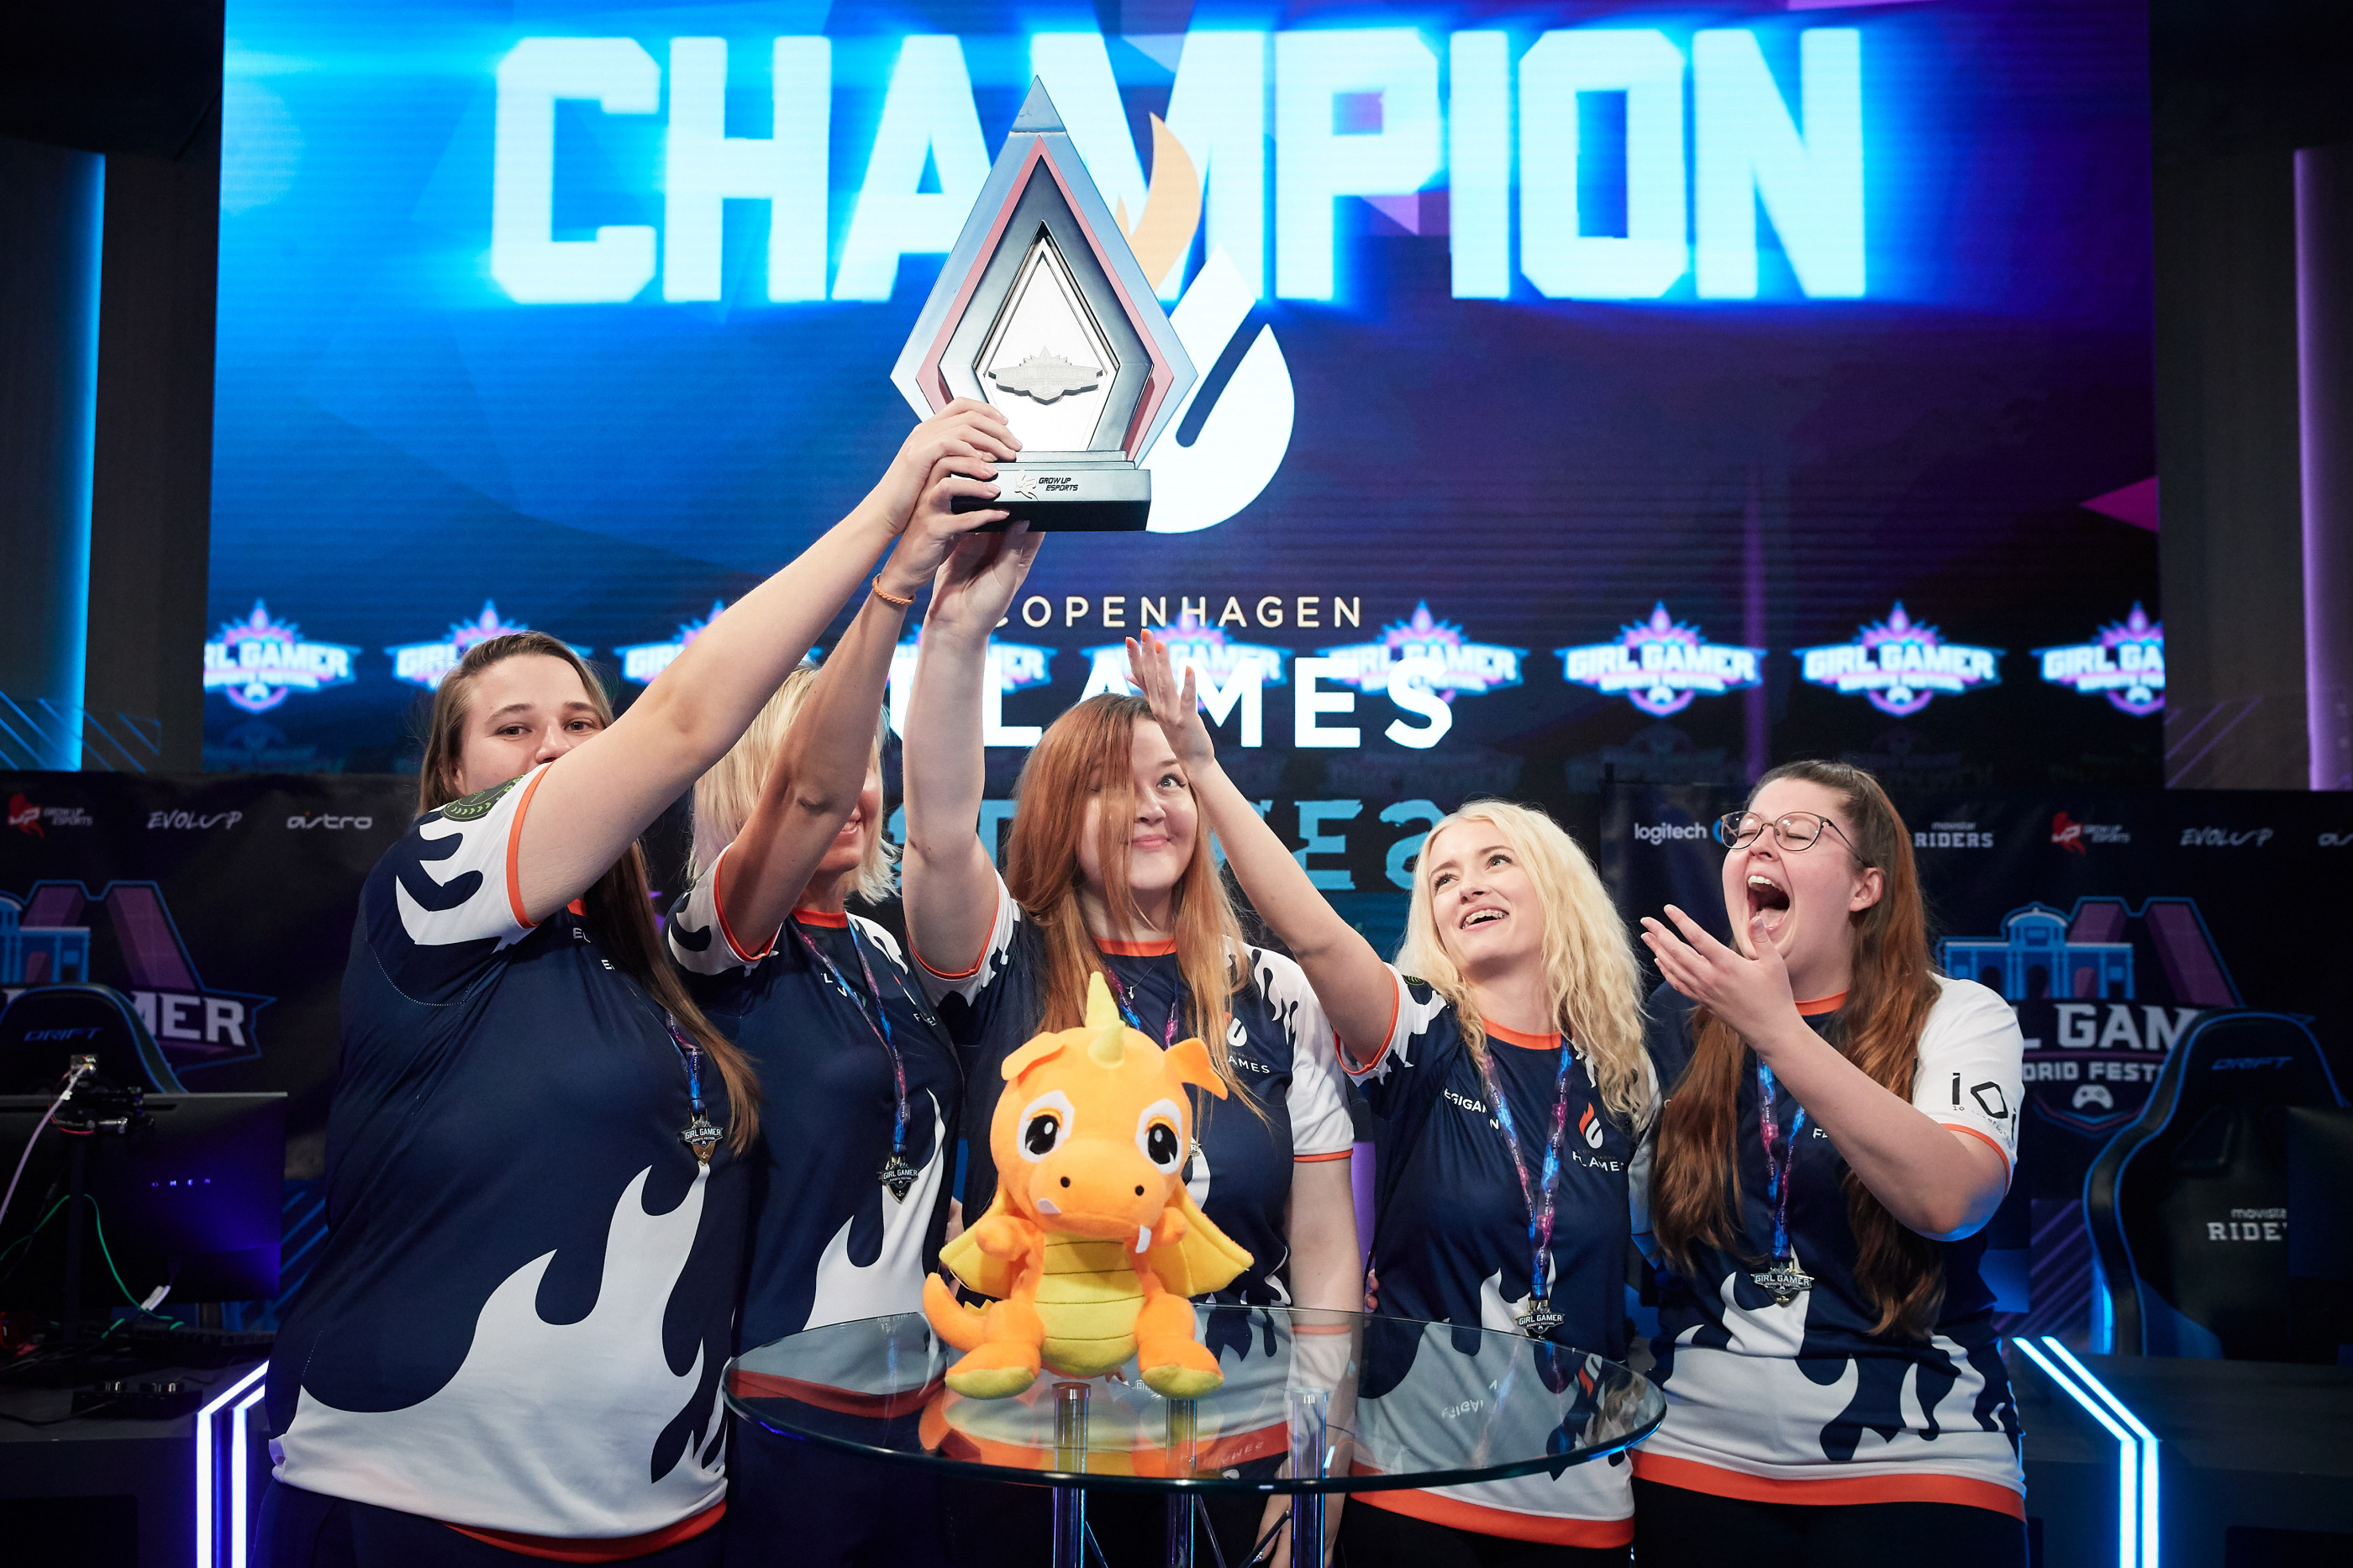 MADRID, SPAIN - SEPTEMBER 29: Copenhagen Flames team stand their trophy after winning their CS:GO final game against Besiktas during day 2 of the Girl Gamer Madrid Festival at Movistar eSports Center on September 29, 2019 in Madrid, Spain. (Photo by Gonzalo Arroyo Moreno/Getty Images)